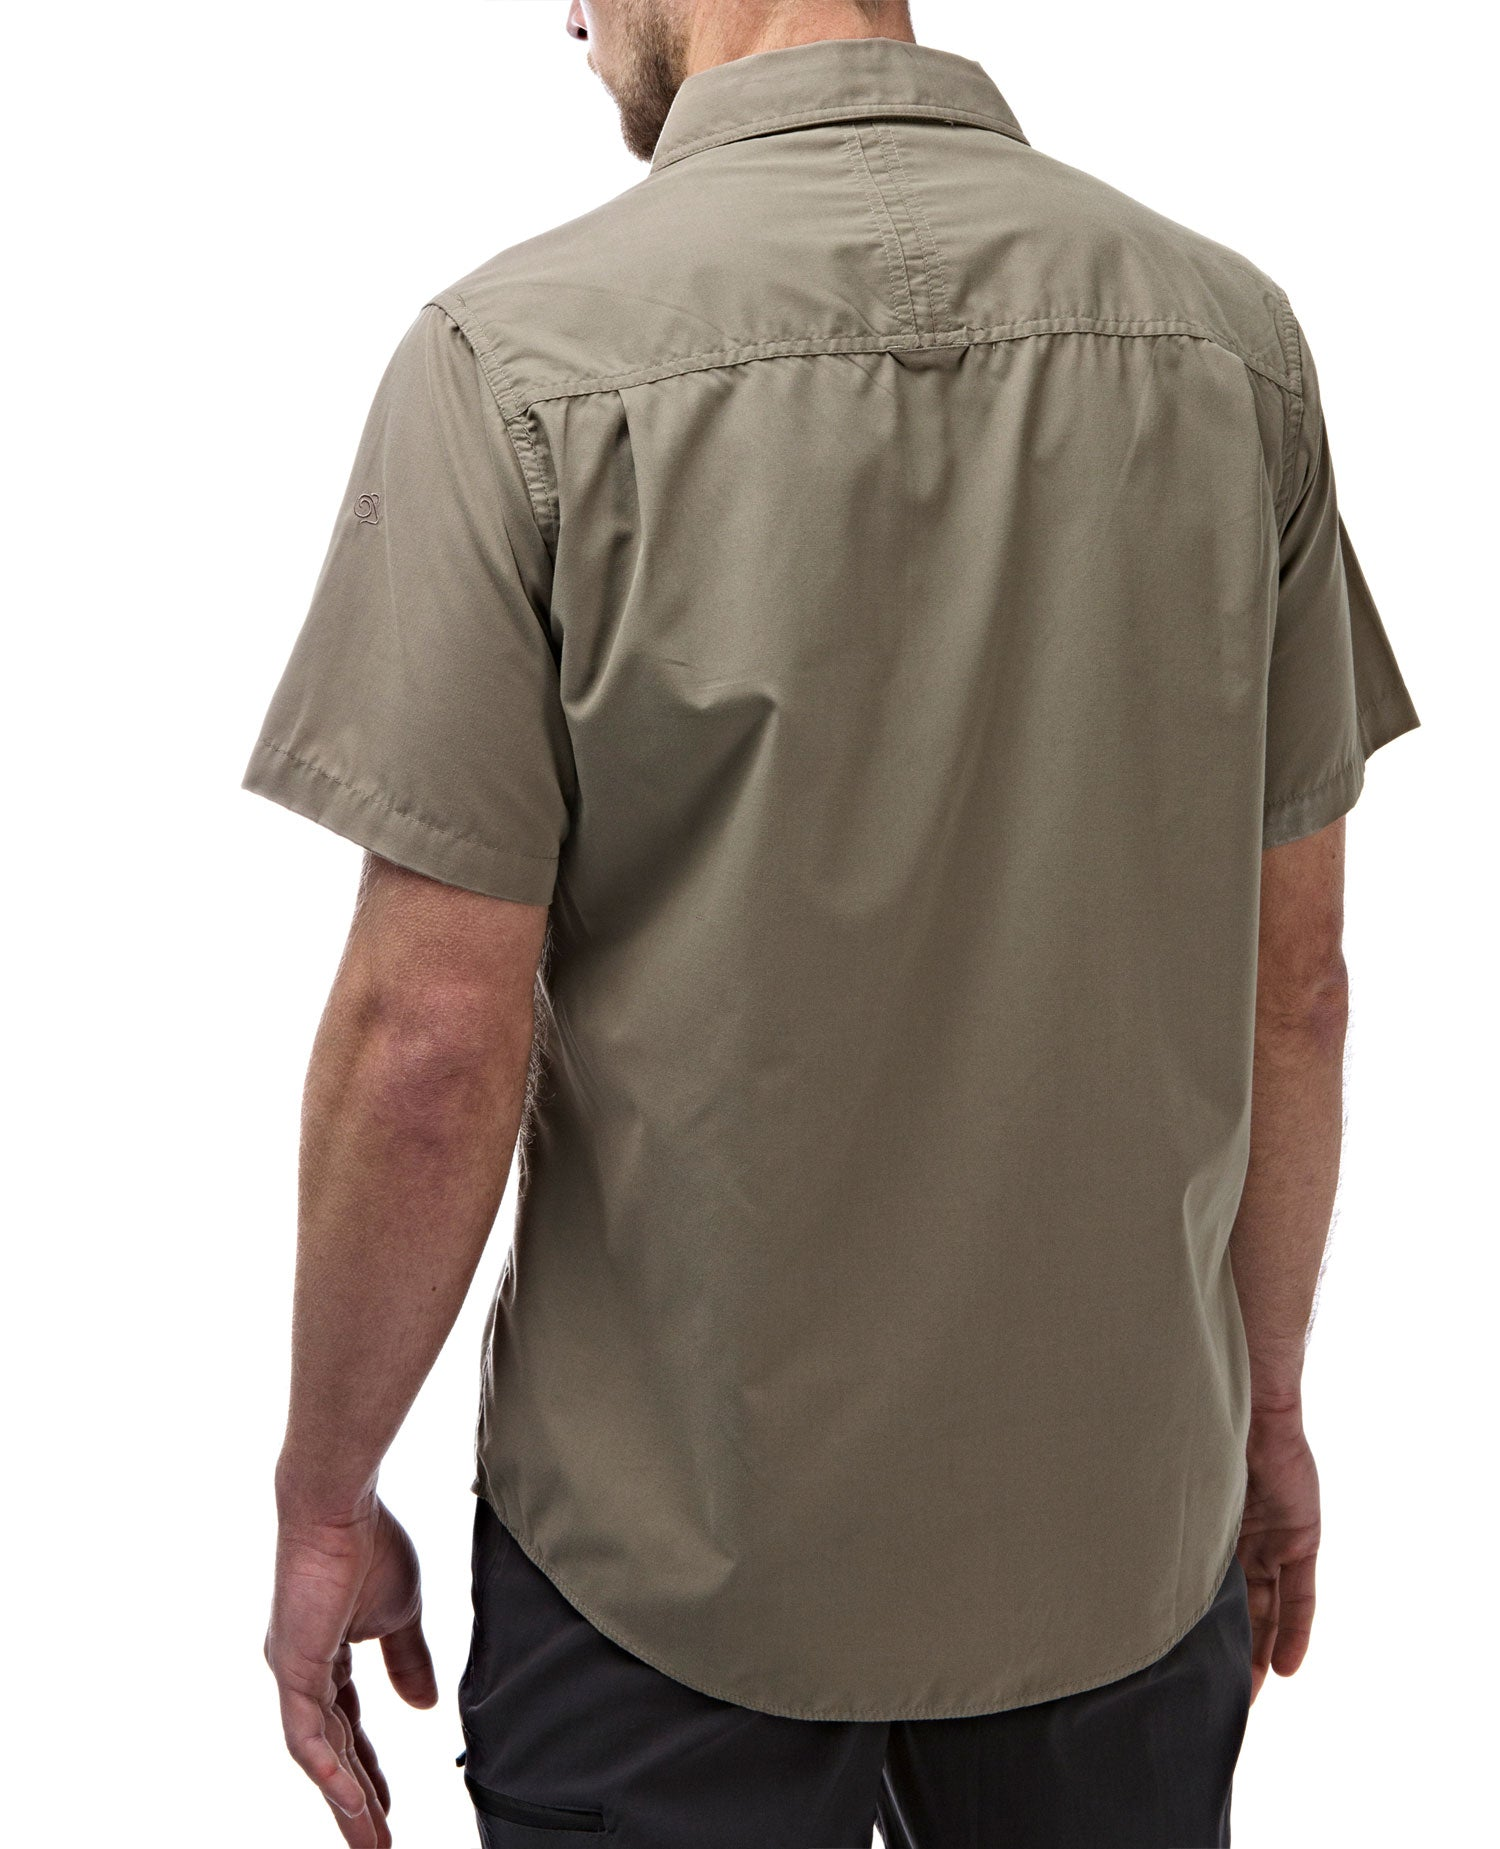 rear view scooped hem Cedar green Man's Bush shirt with short sleeves